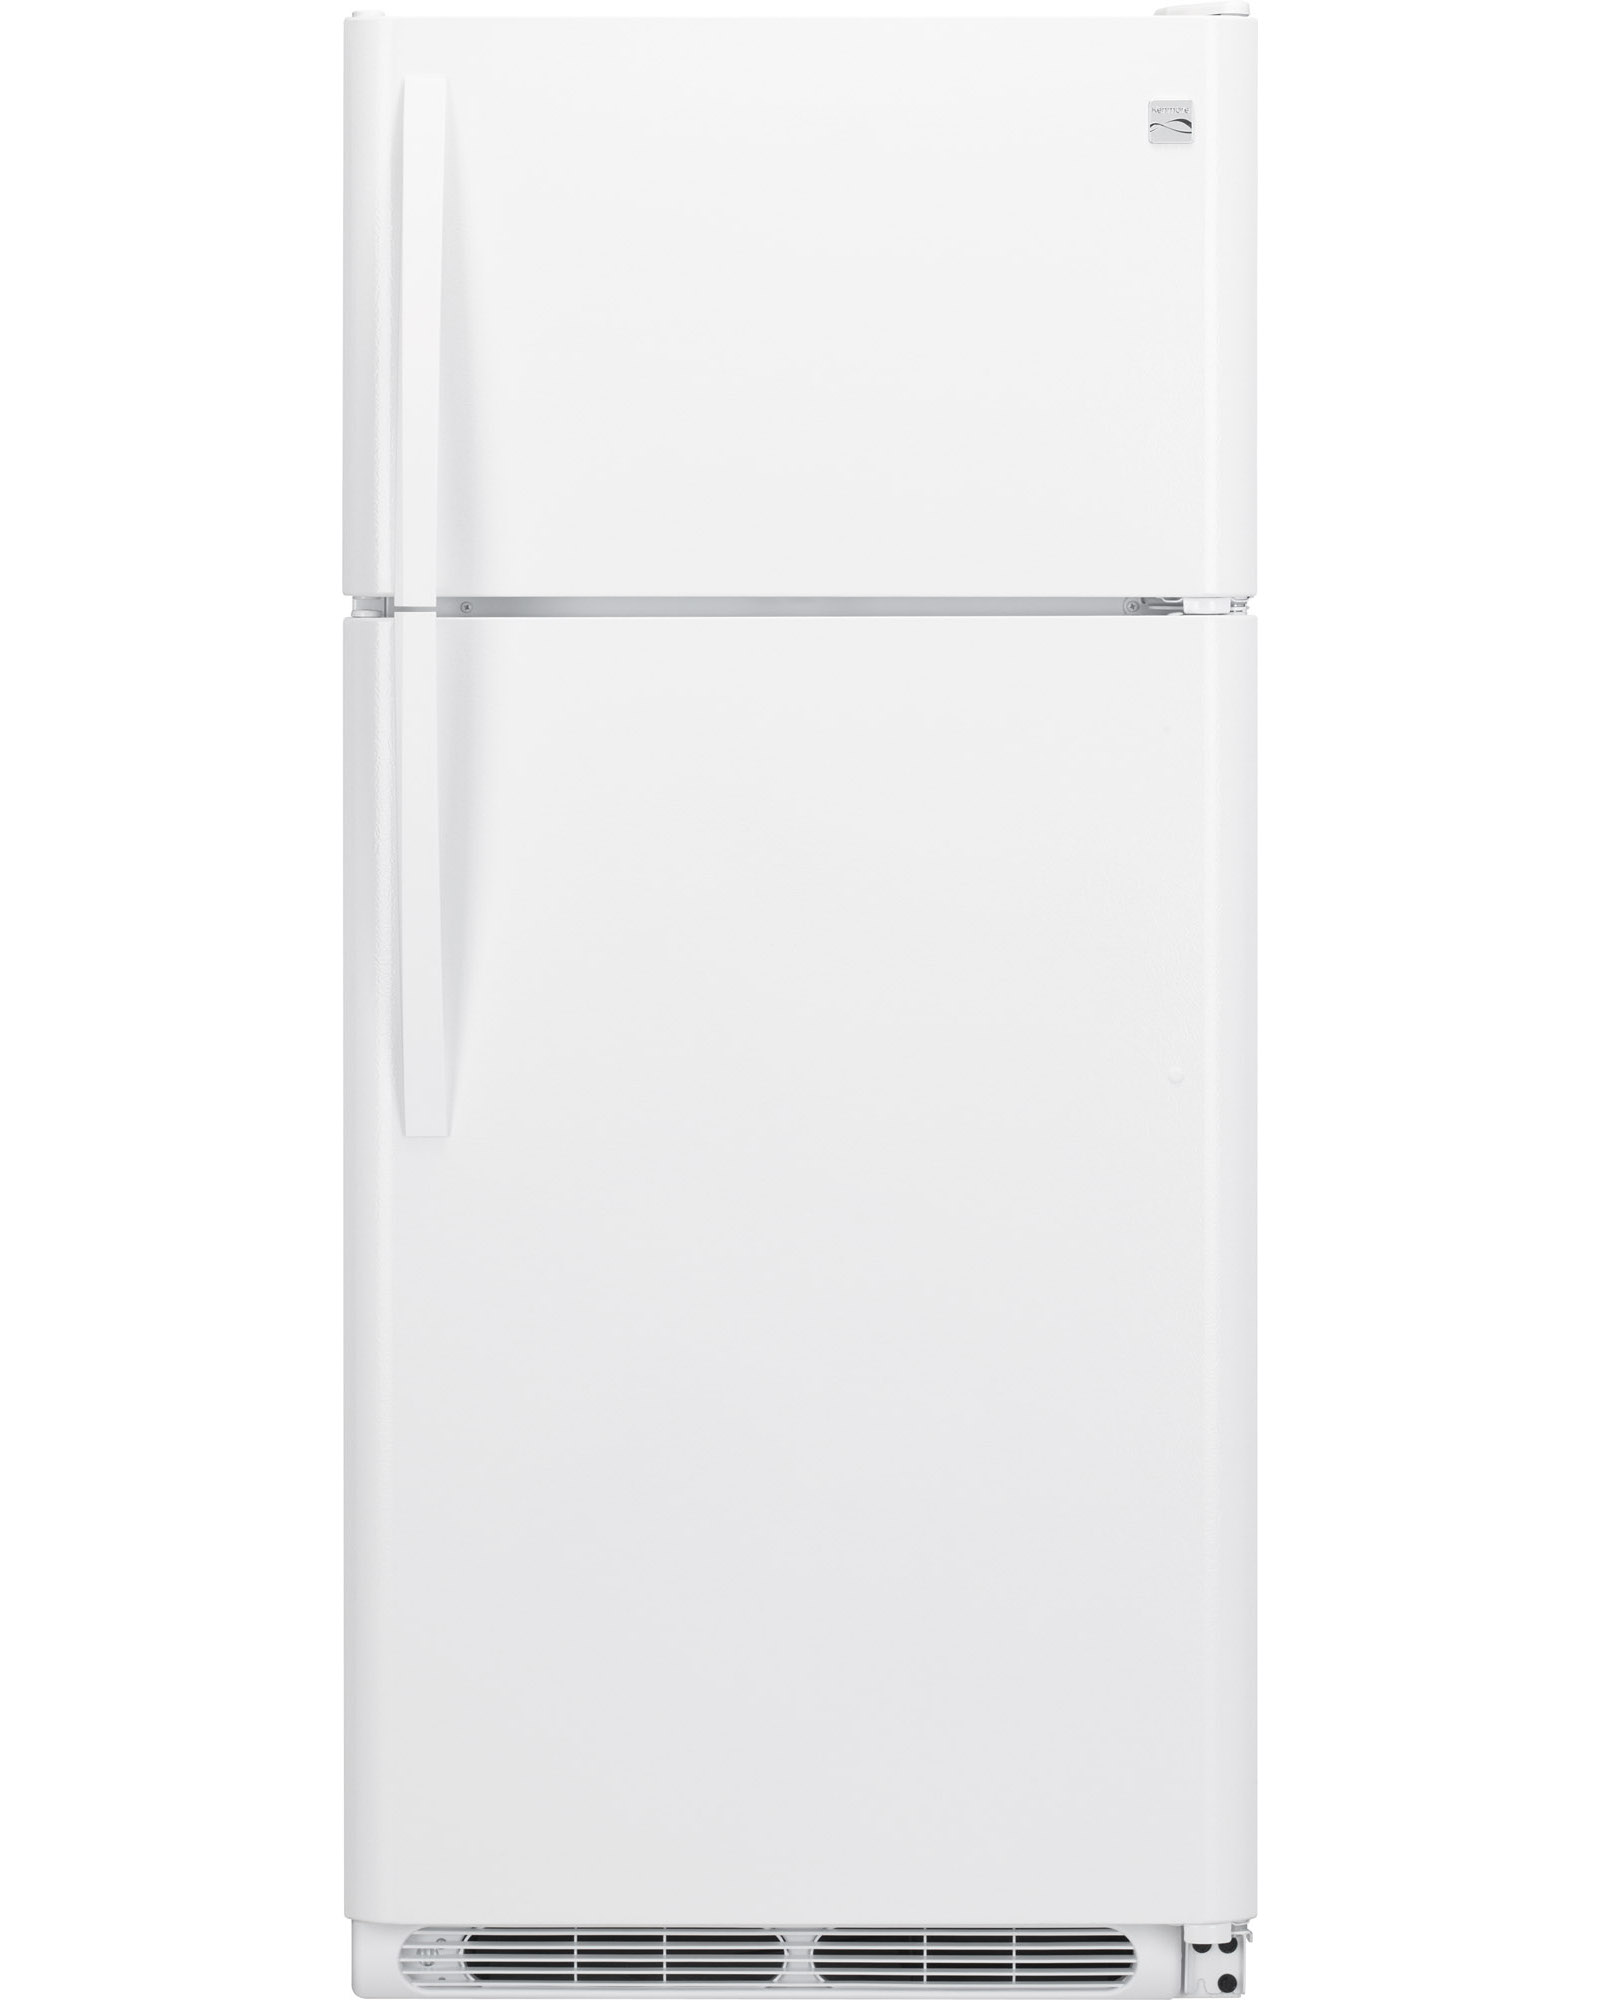 70502-18-cu-ft-Top-Freezer-Refrigerator-White